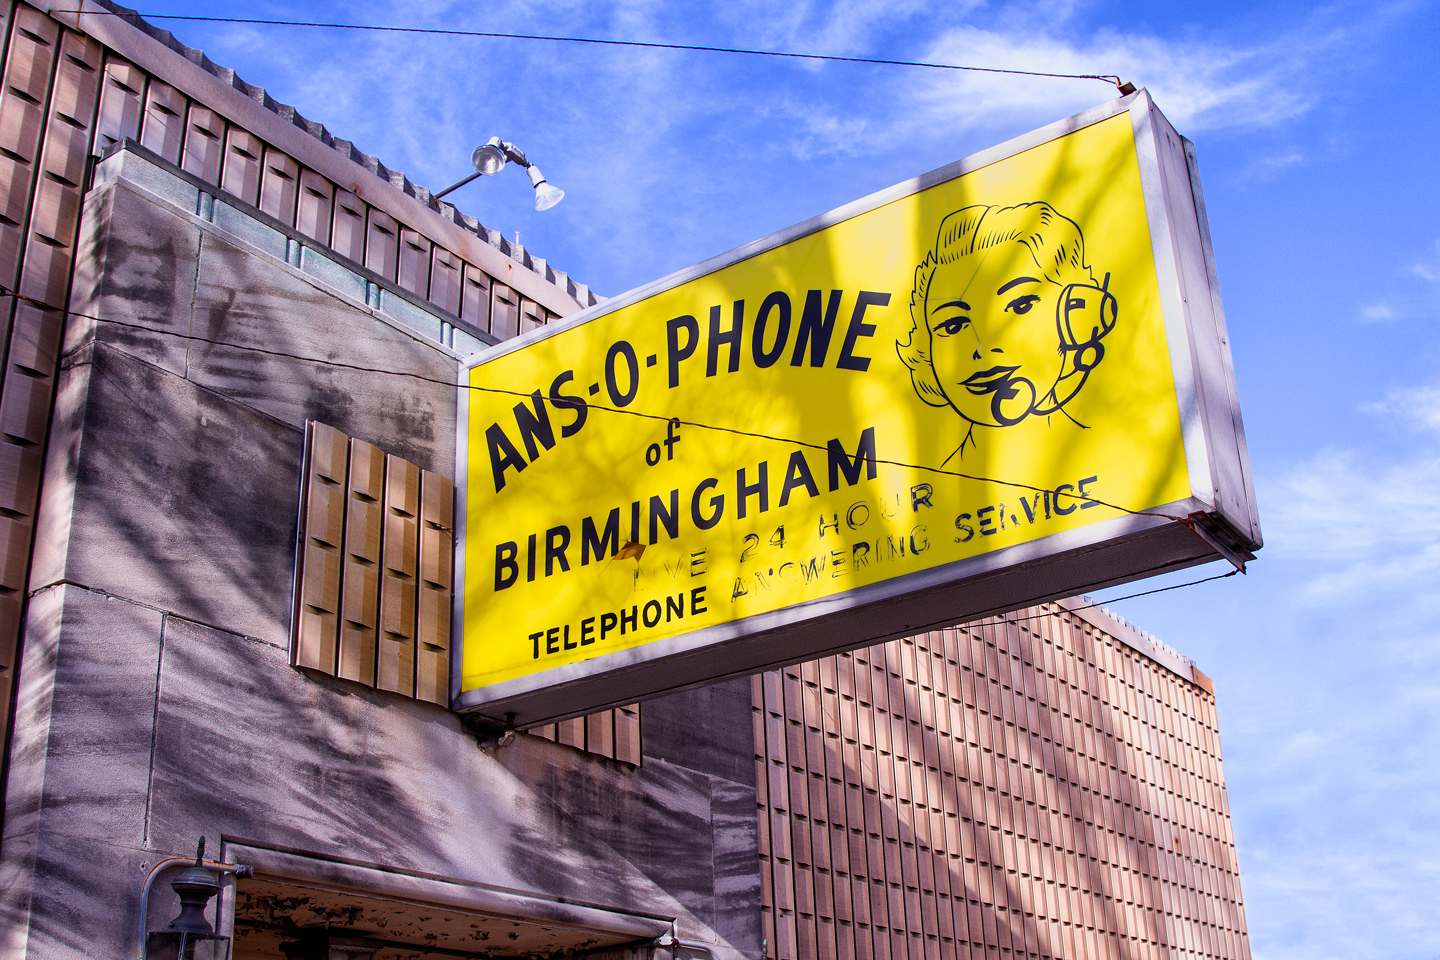 vintage sign for ans-o-phone phone answering service birmingham alabama